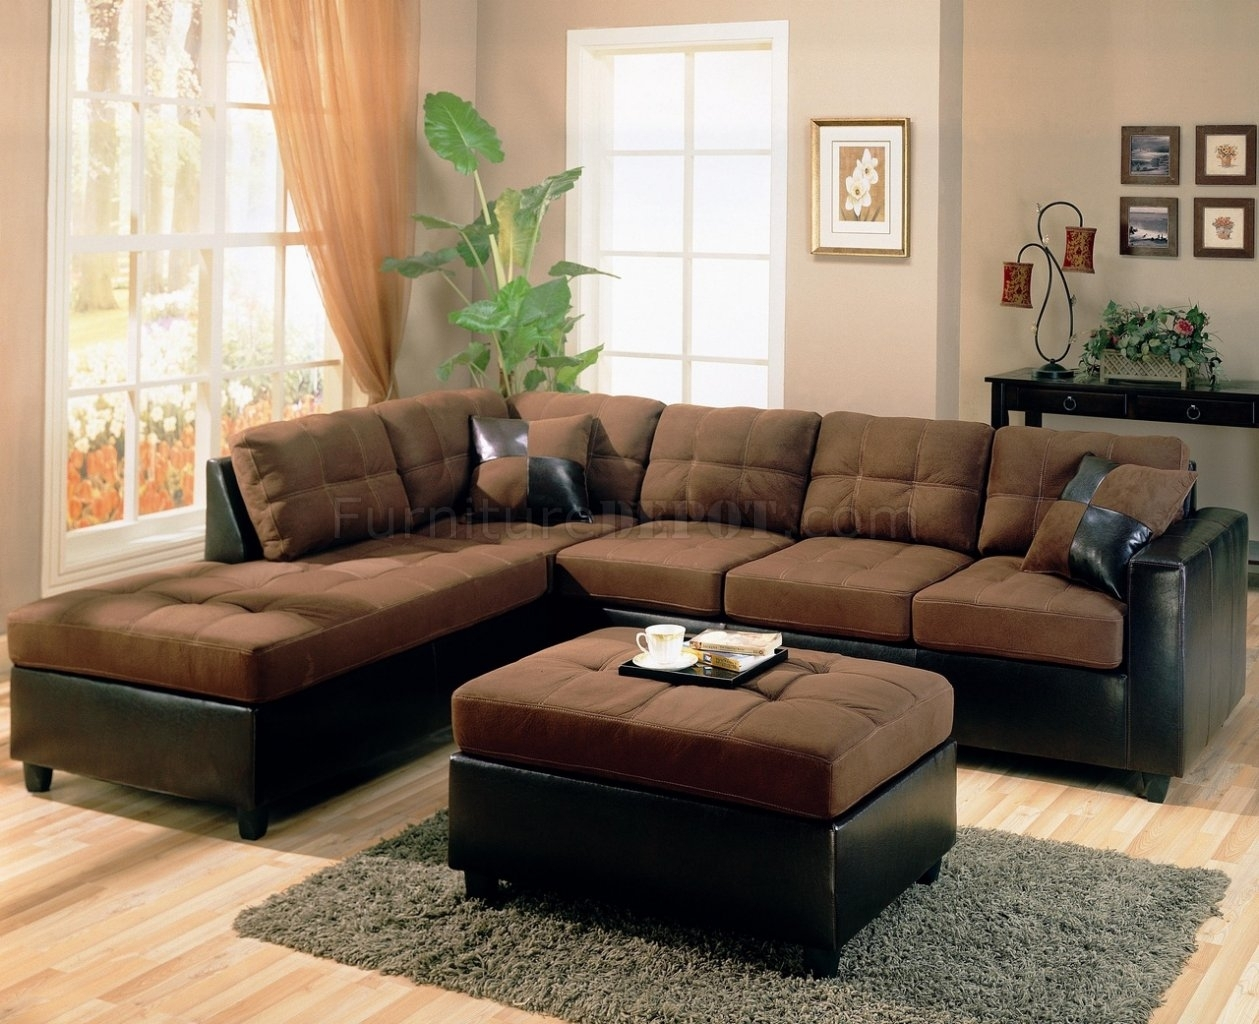 Attractive Chocolate Brown Sectional Sofas 24 In Jennifer Sofas And With Regard To Chocolate Brown Sectional Sofas (Image 2 of 10)